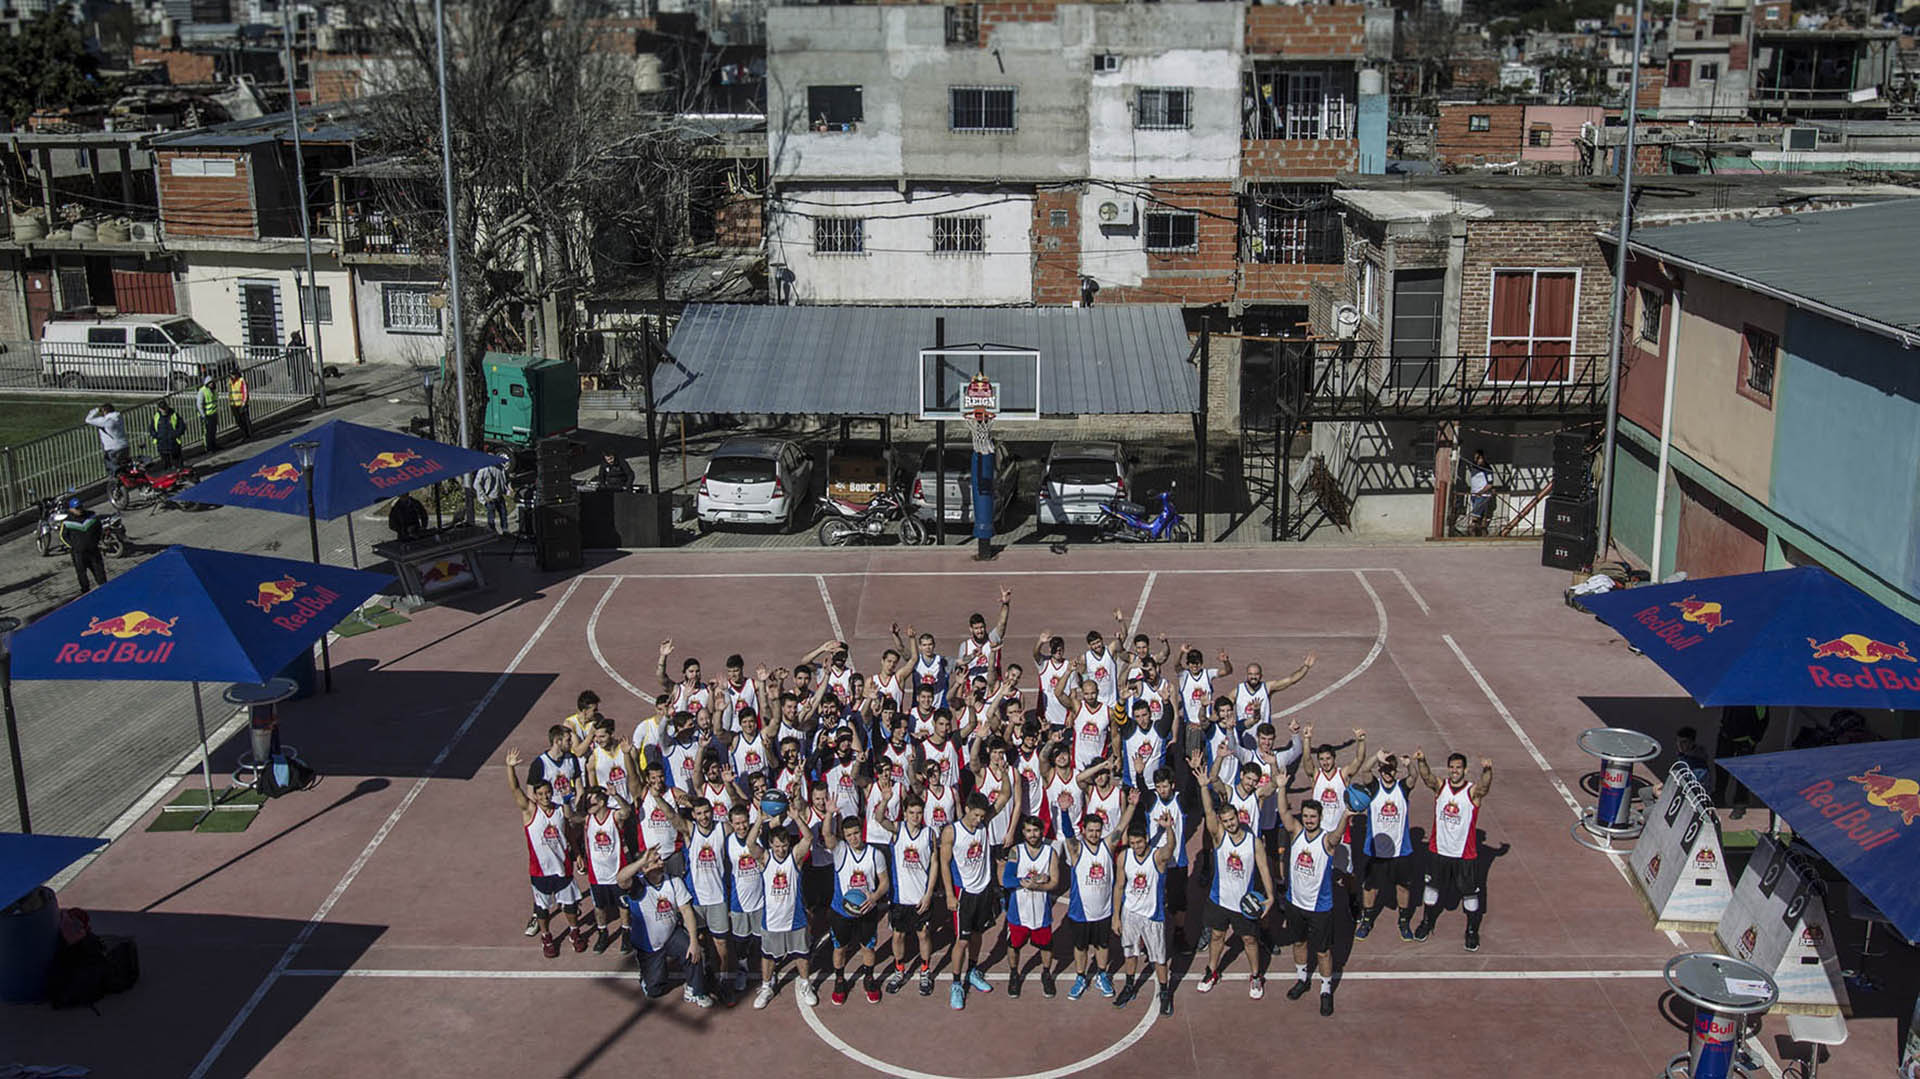 Competitors pose for a portrait during Red Bull Reign National Final at Barrio 31 in Buenos Aires, Argentina on August 21, 2017.